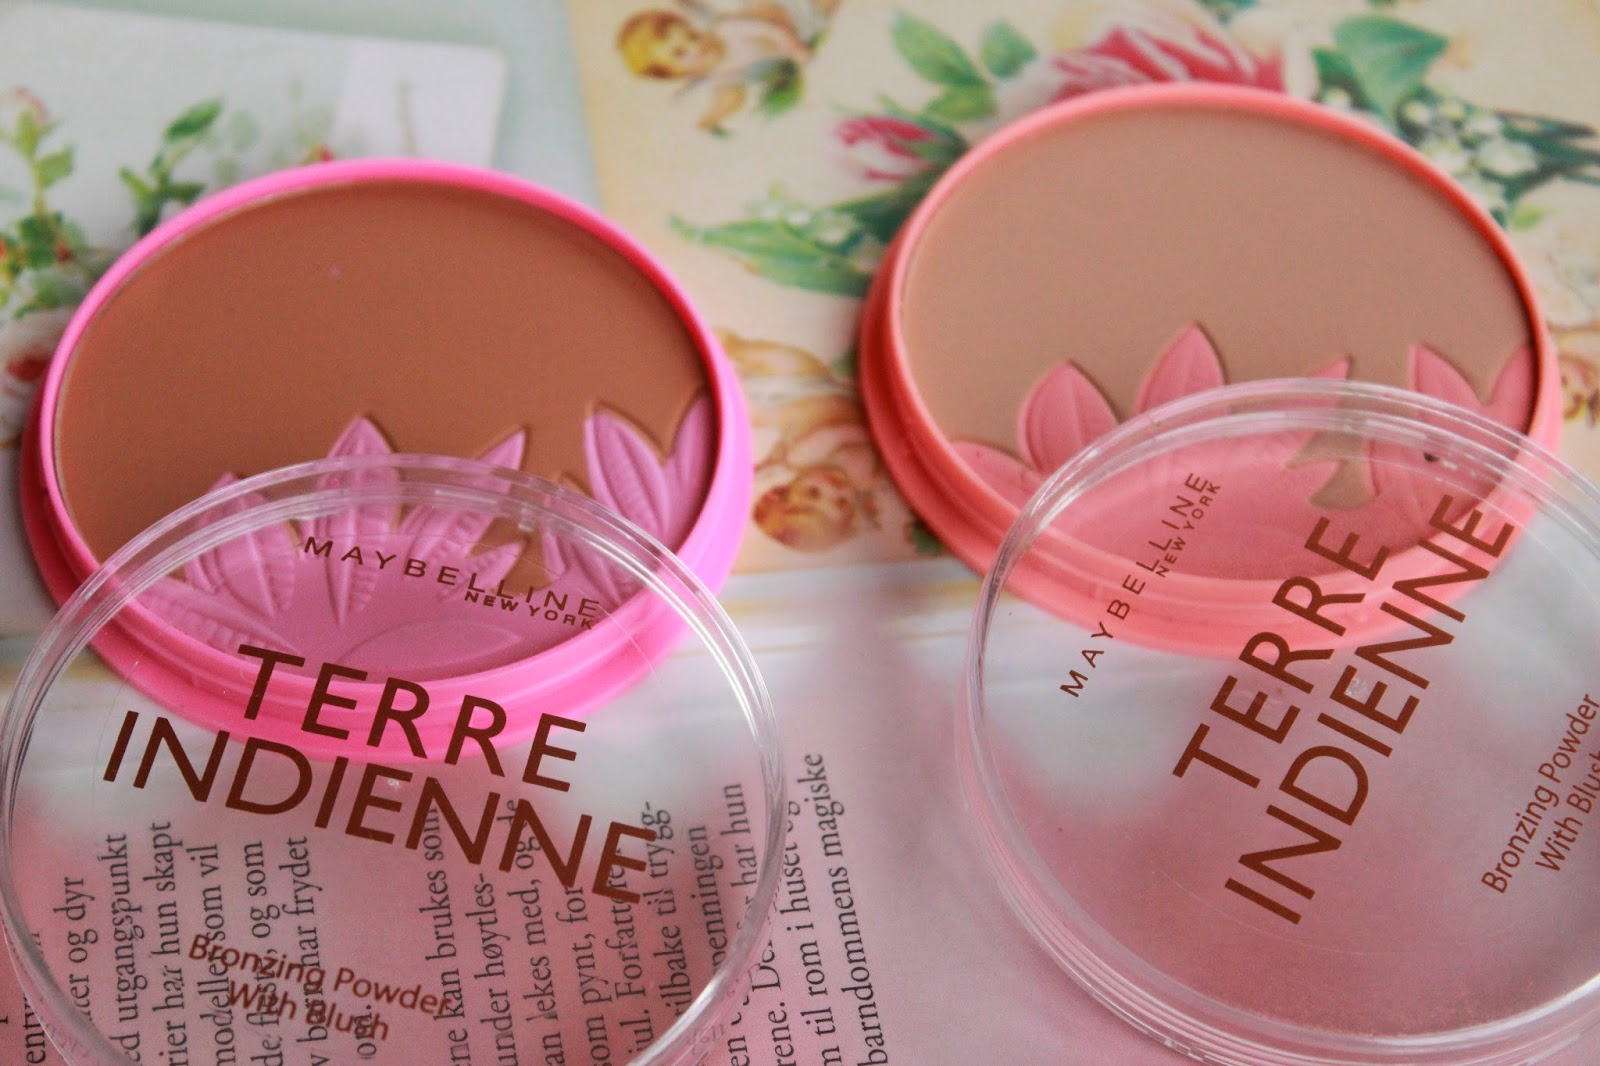 review swatches maybelline terre indienne poeders bronzed paradise golden tropics